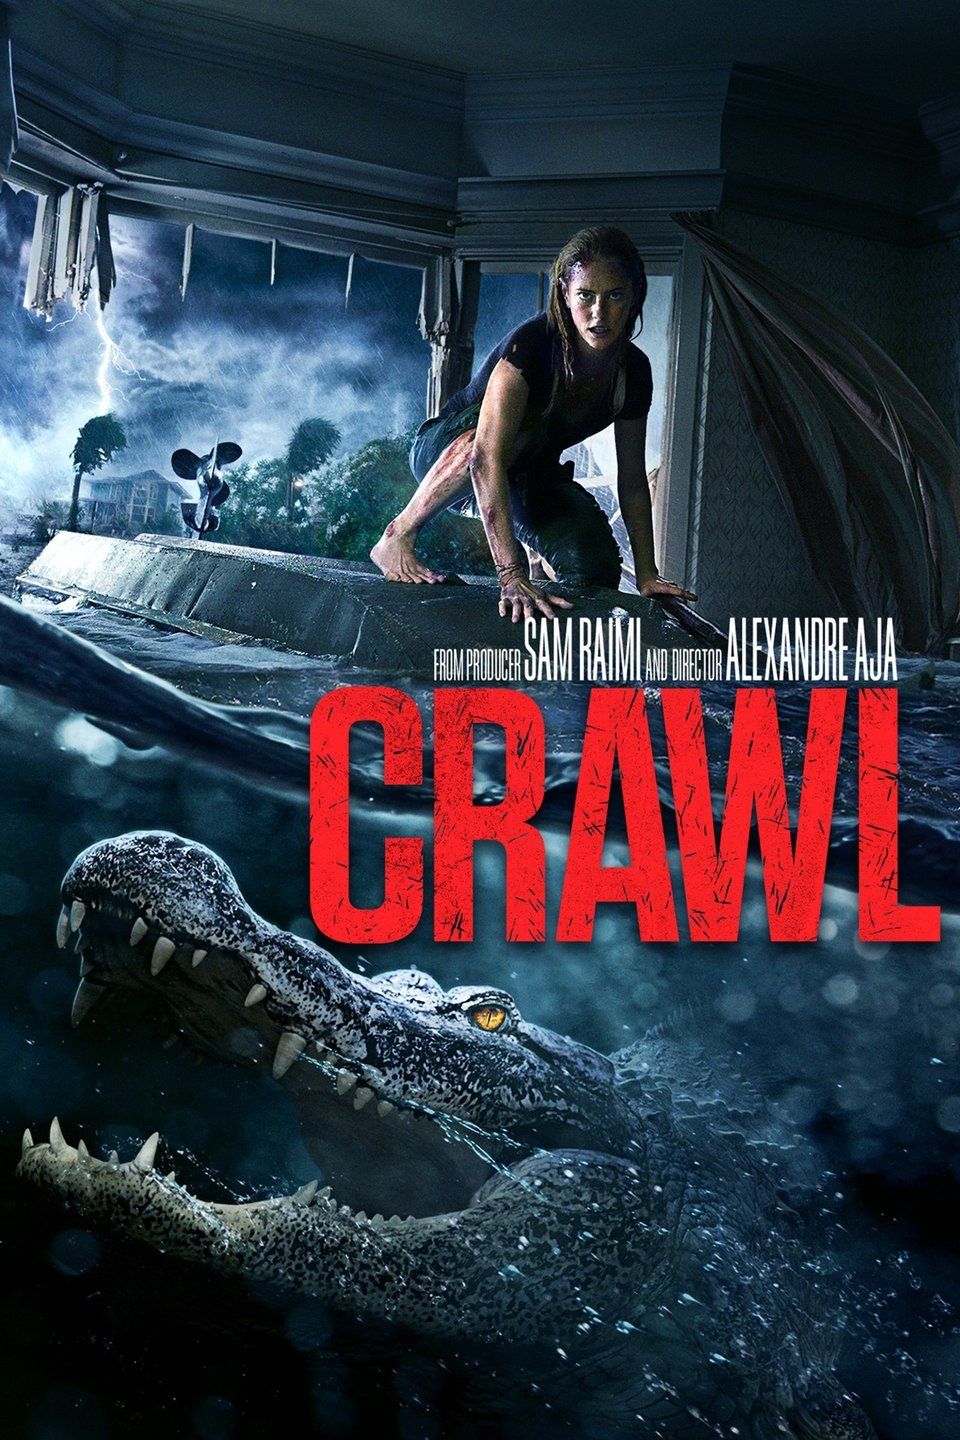 Crawl (2019) - Directed by: Alexandre AjaStarring: Kaya Scodelario, Barry Pepper, Ross AndersonRated: R for Bloody Creature Violence and Brief LanguageRunning Time: 1 h 27 mTMM Score: 3 stars out of 5STRENGTHS: Pacing, Special Effects, Production DesignWEAKNESSES: Thin Story, Some Writing